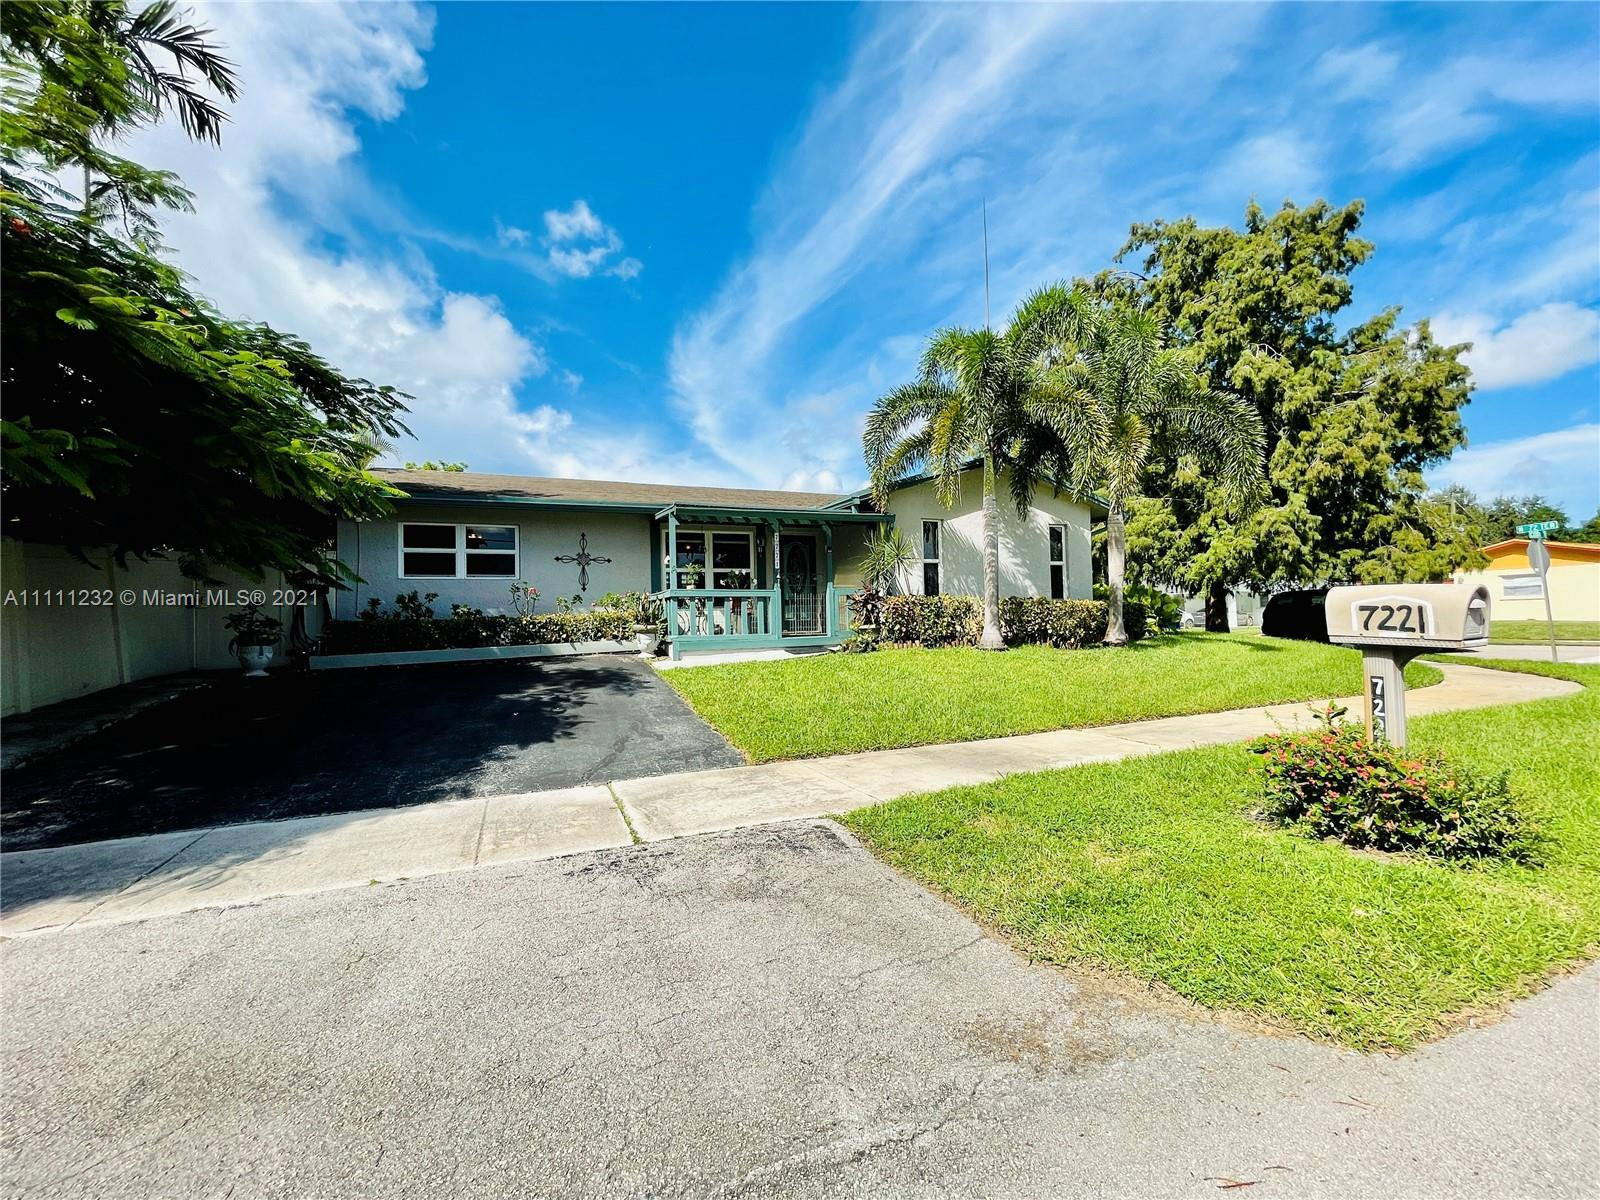 Your dream home awaits! Well-maintained 3 bedroom, 2 bathroom home with a private back yard oasis in